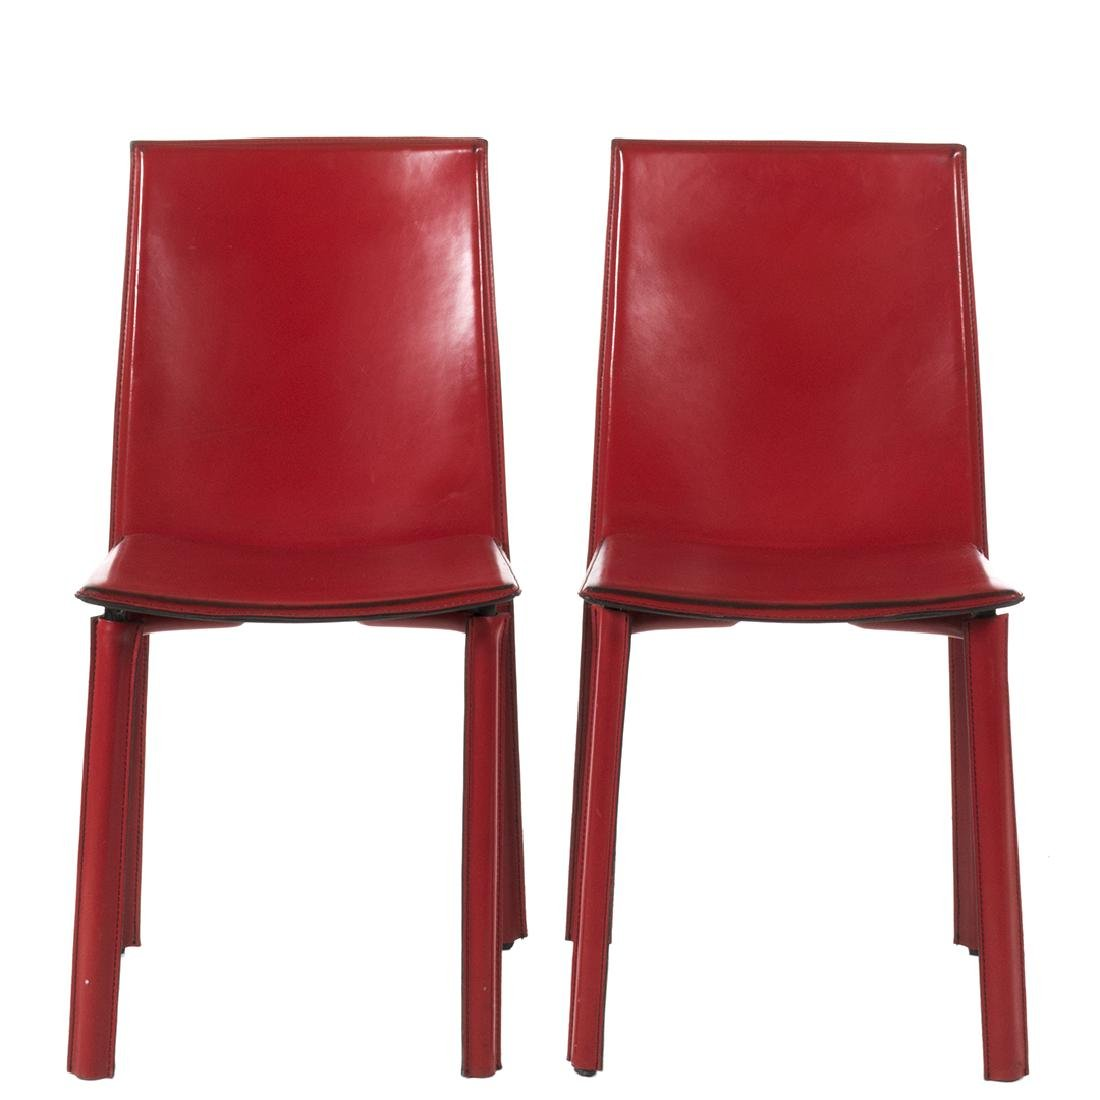 Mario Bellini Style Chairs (2)